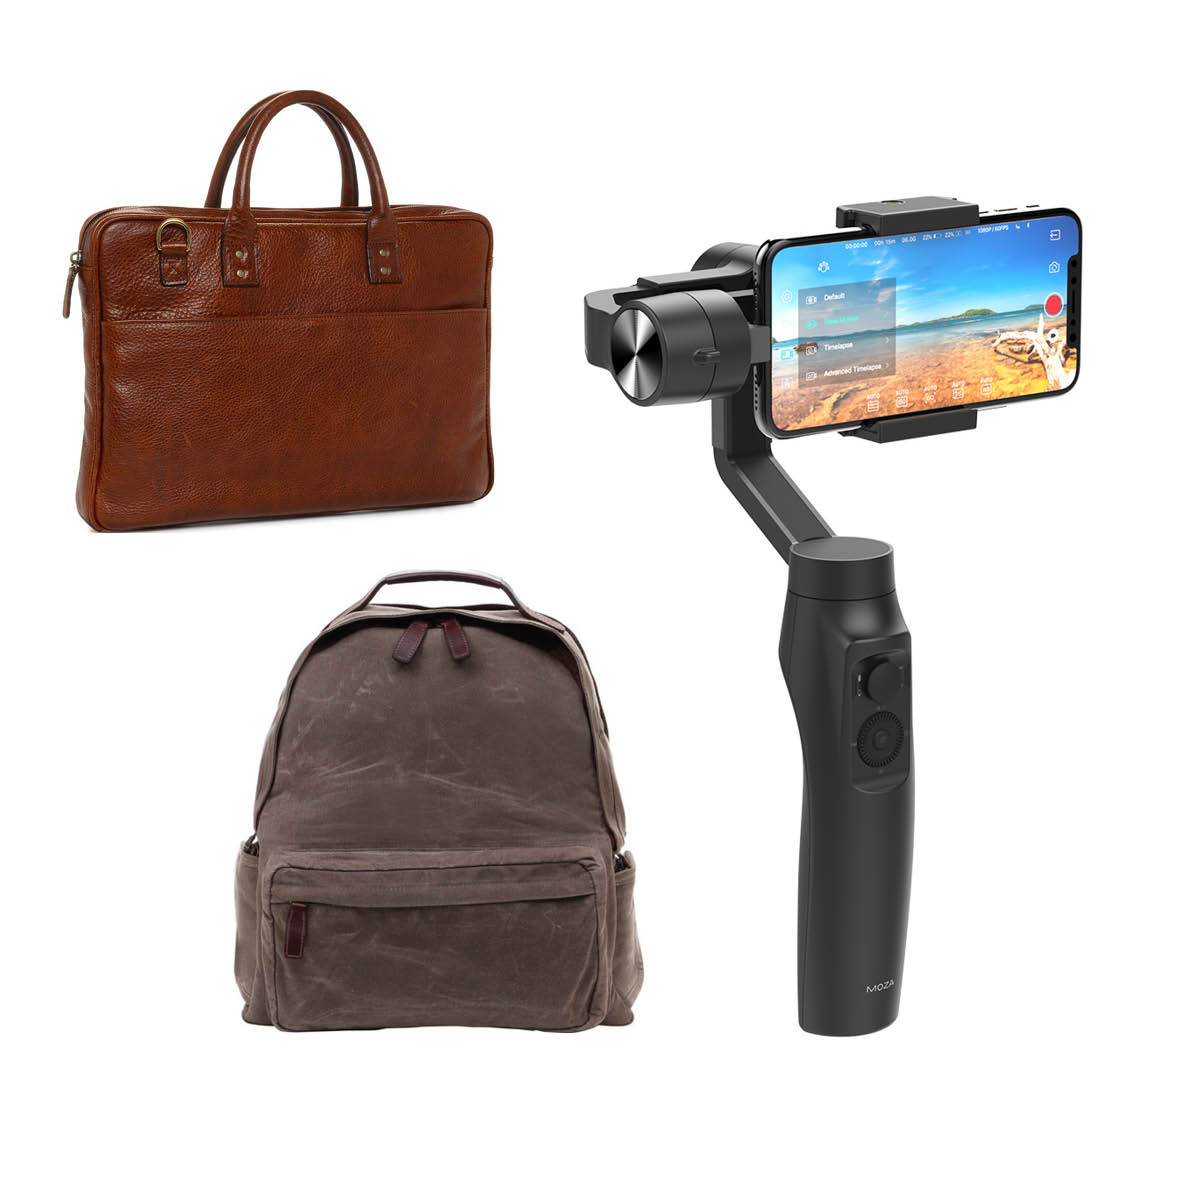 Landscape - Sponsored by SigmaFirst: Ona Bolton Street Backpack, worth $799Second: Ona Leather Laptop Bag, worth $499Third: Moza Mini-Me Smartphone Gimbal, worth $250